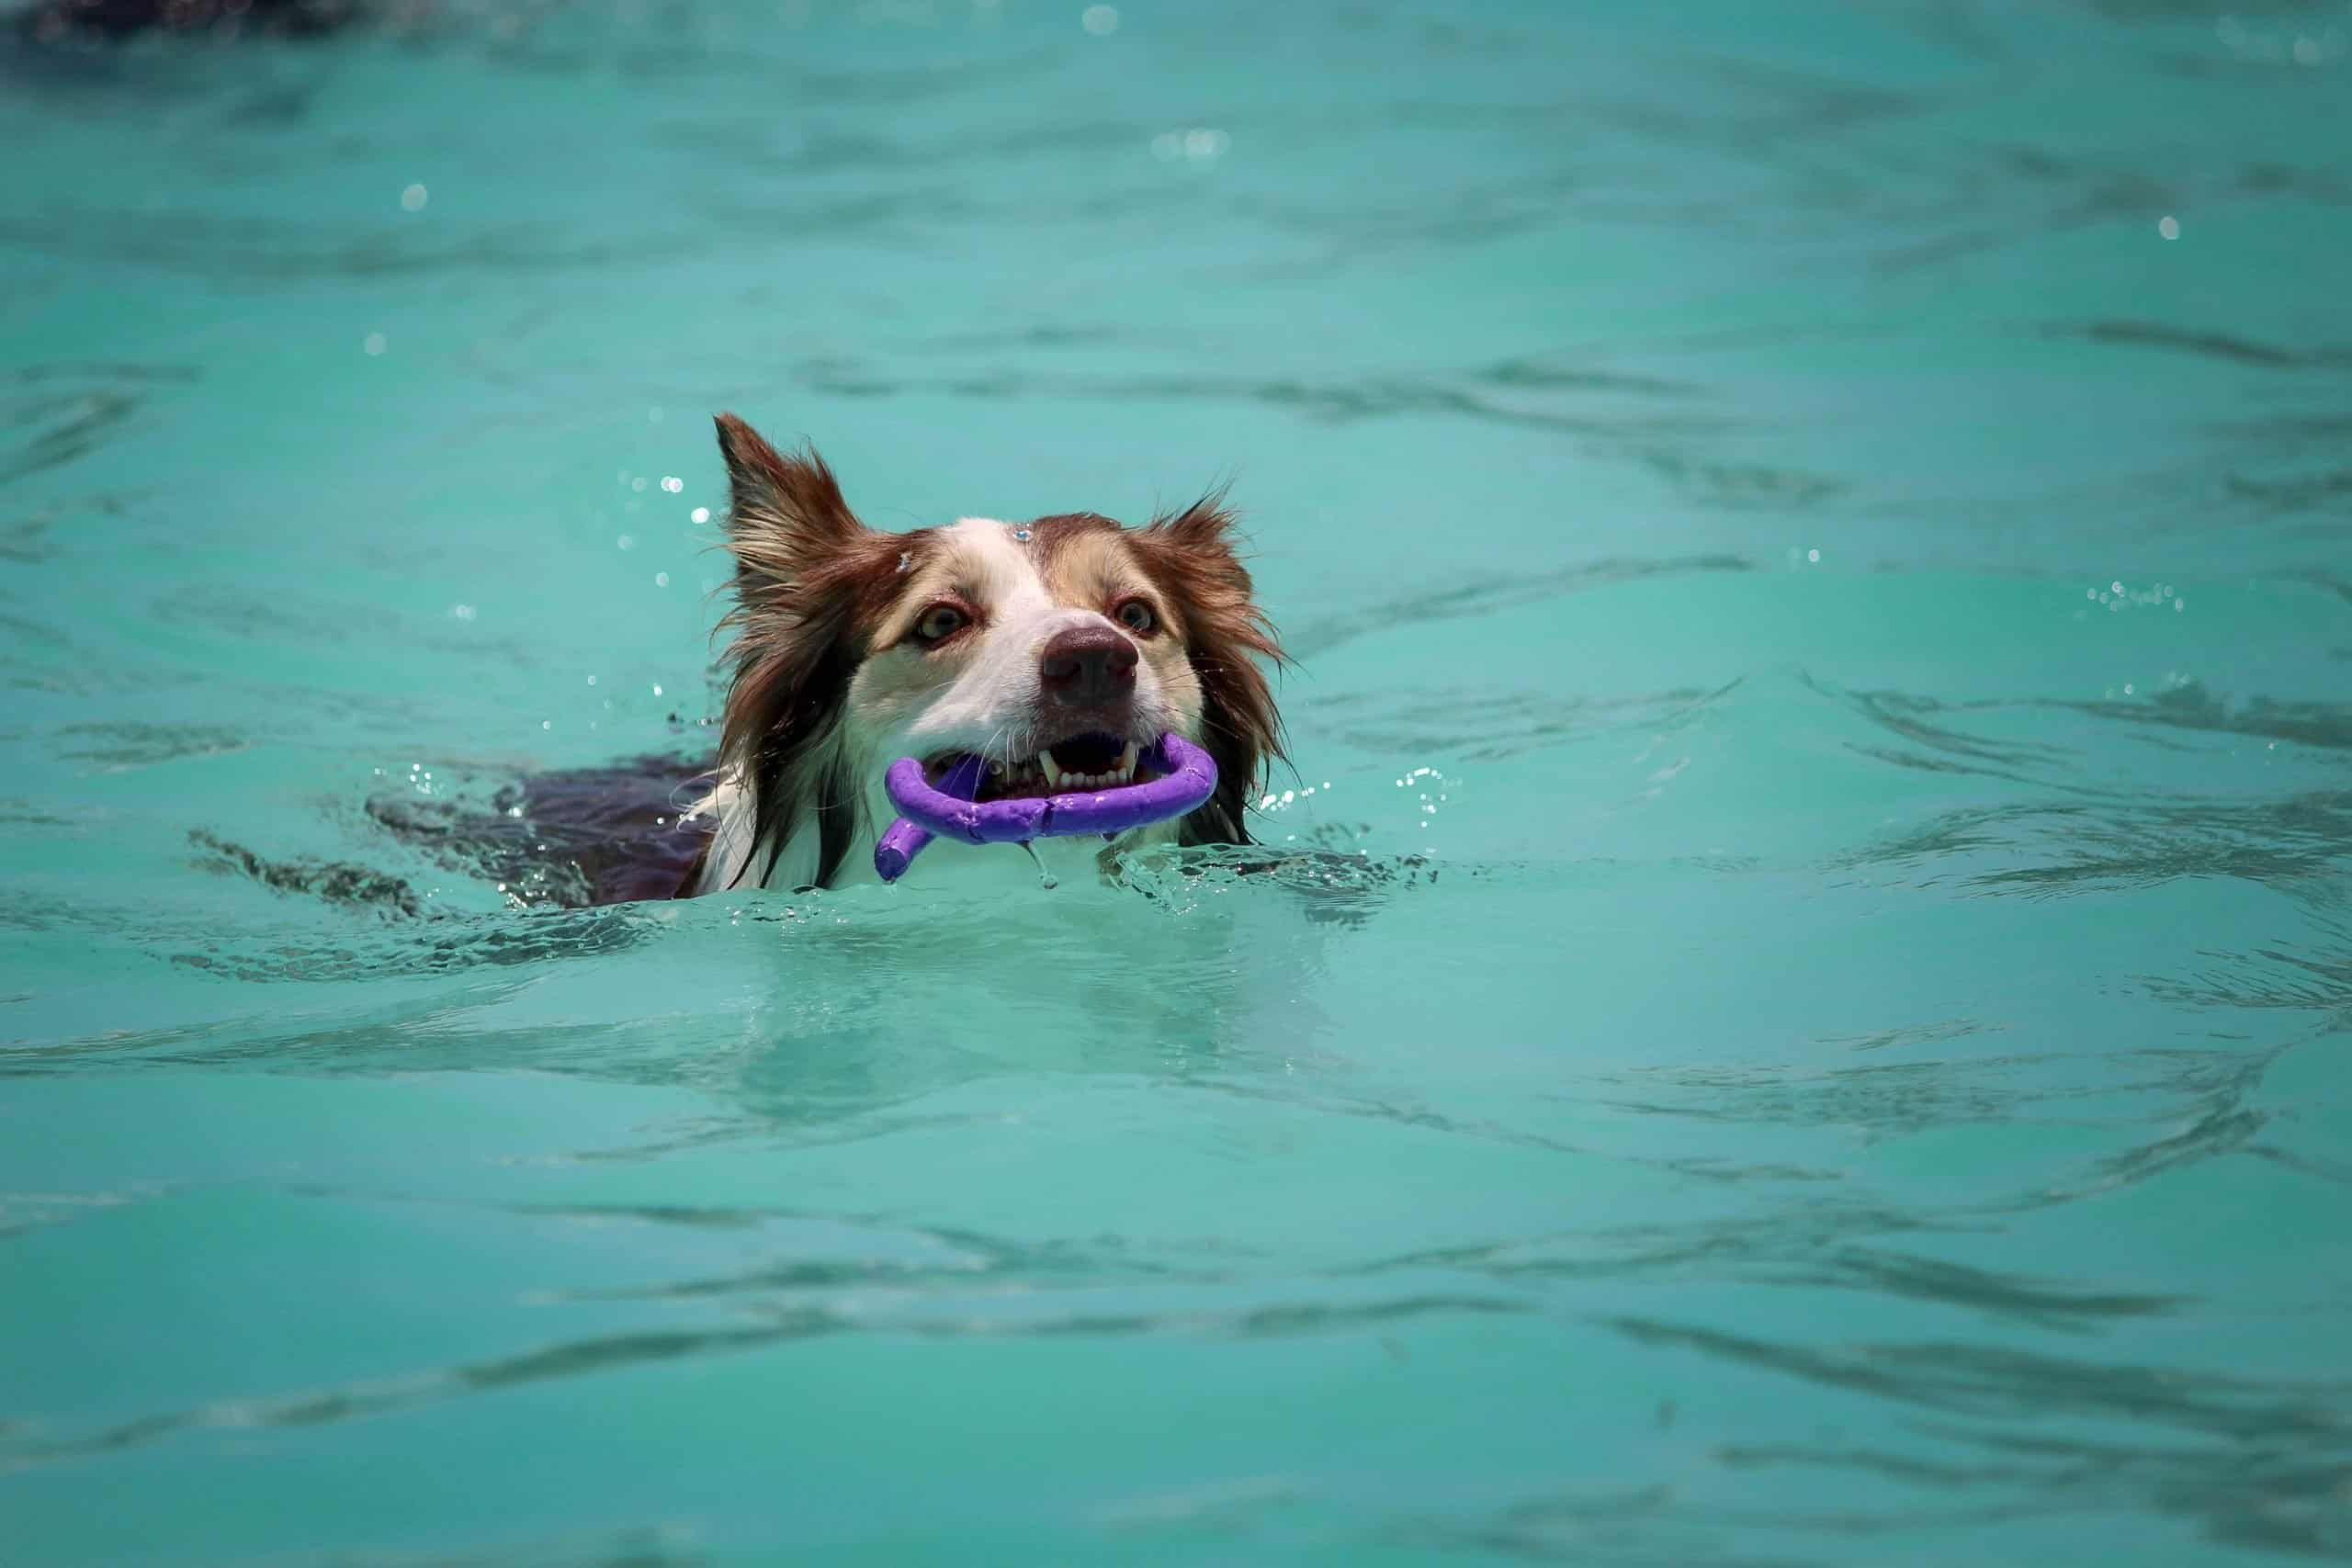 Dog swimming in the pool.